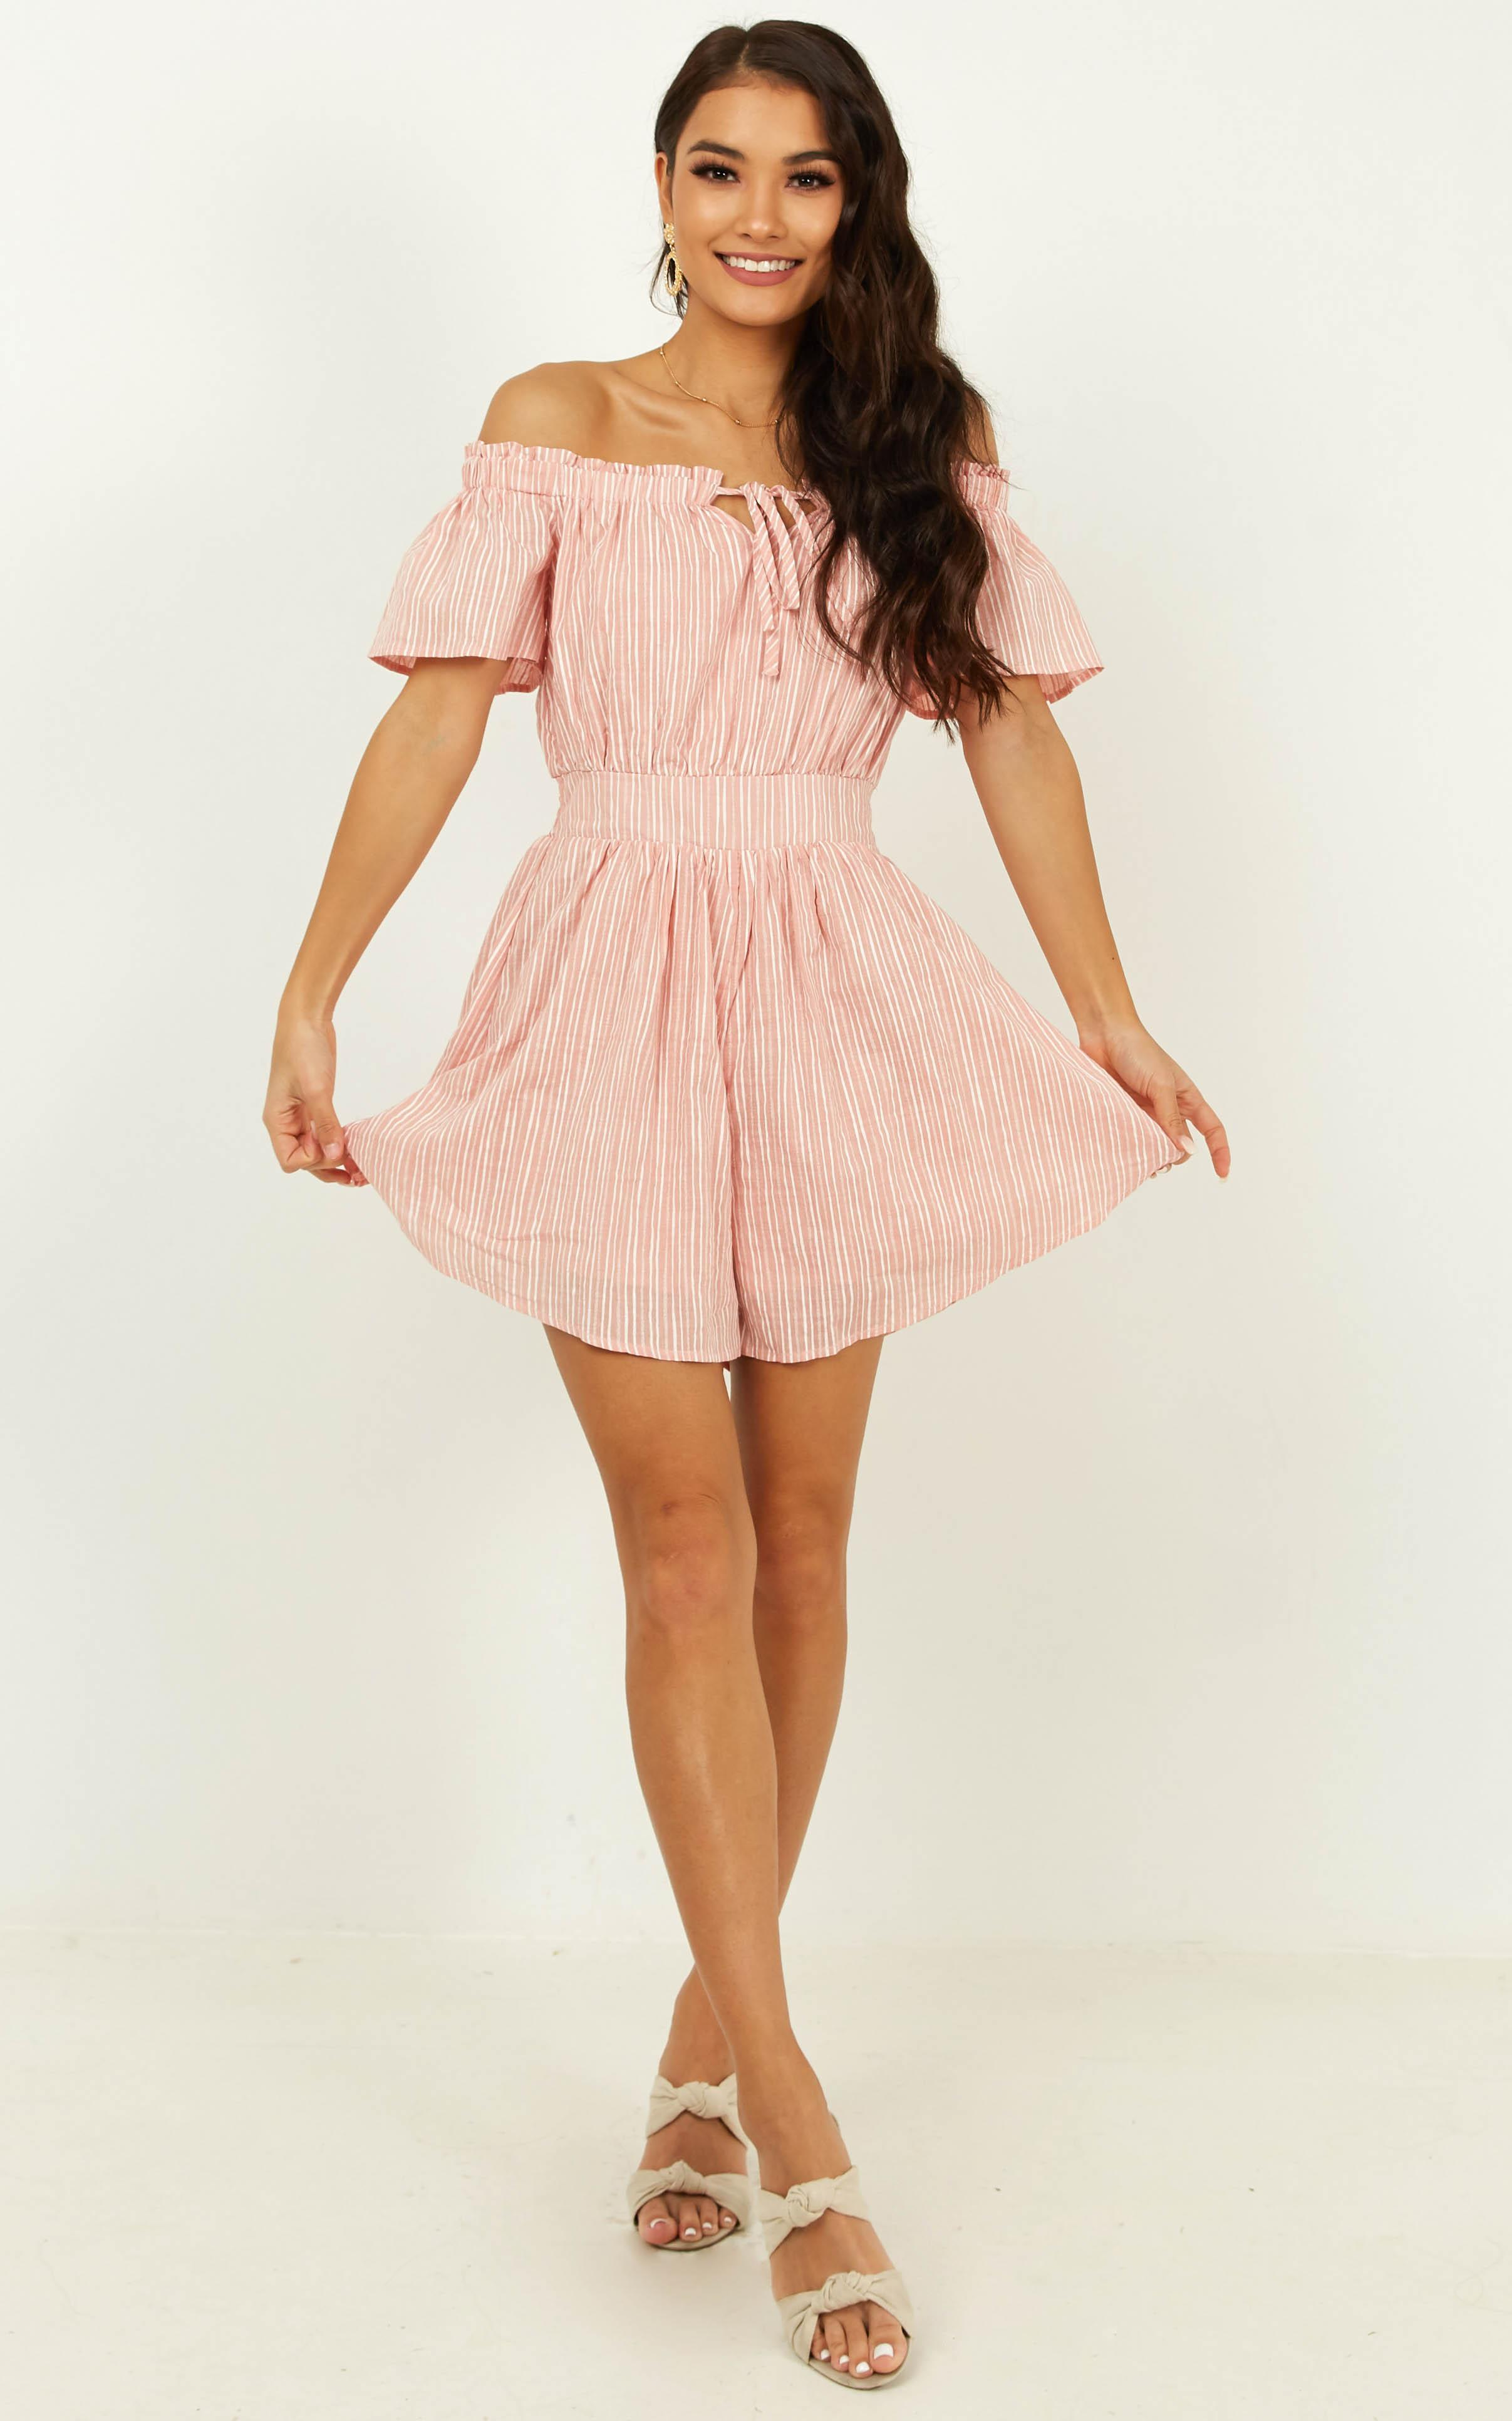 Through To You Playsuit in blush stripe - 18 (XXXL), Blush, hi-res image number null